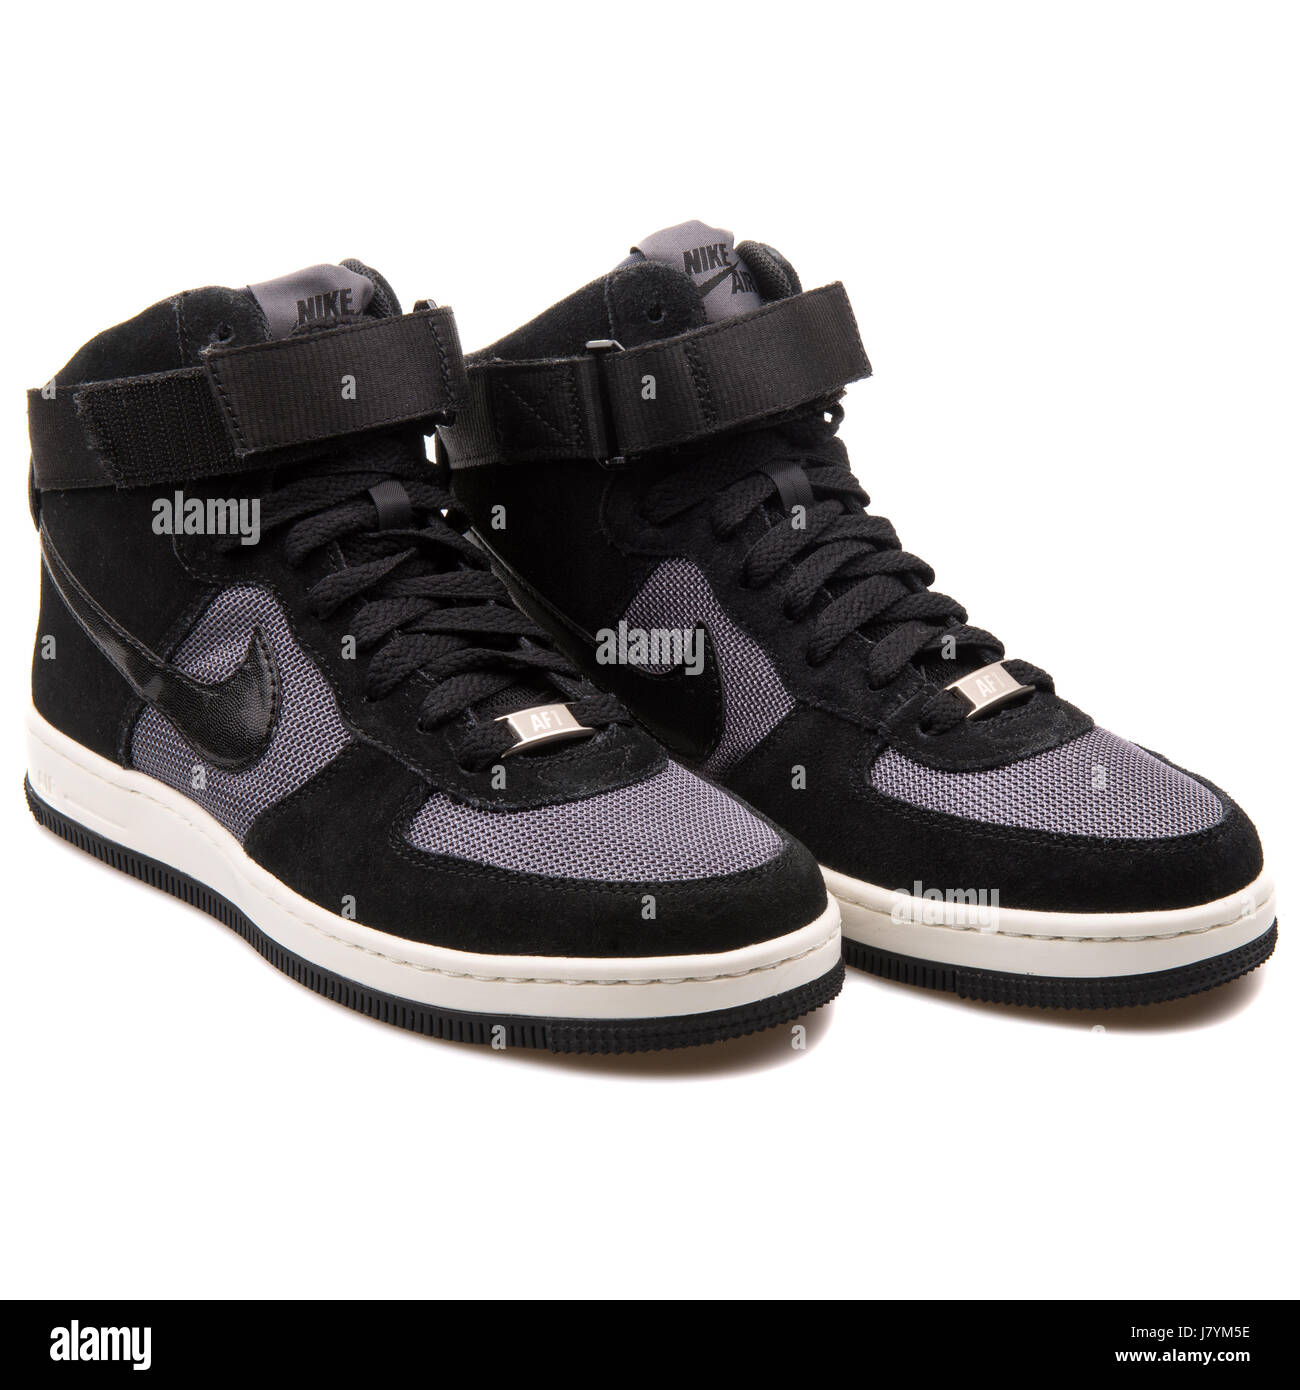 Nike W AF1 Ultra Force Mid Women s High Black Sneakers - 654851-009 - Stock c23b94382c